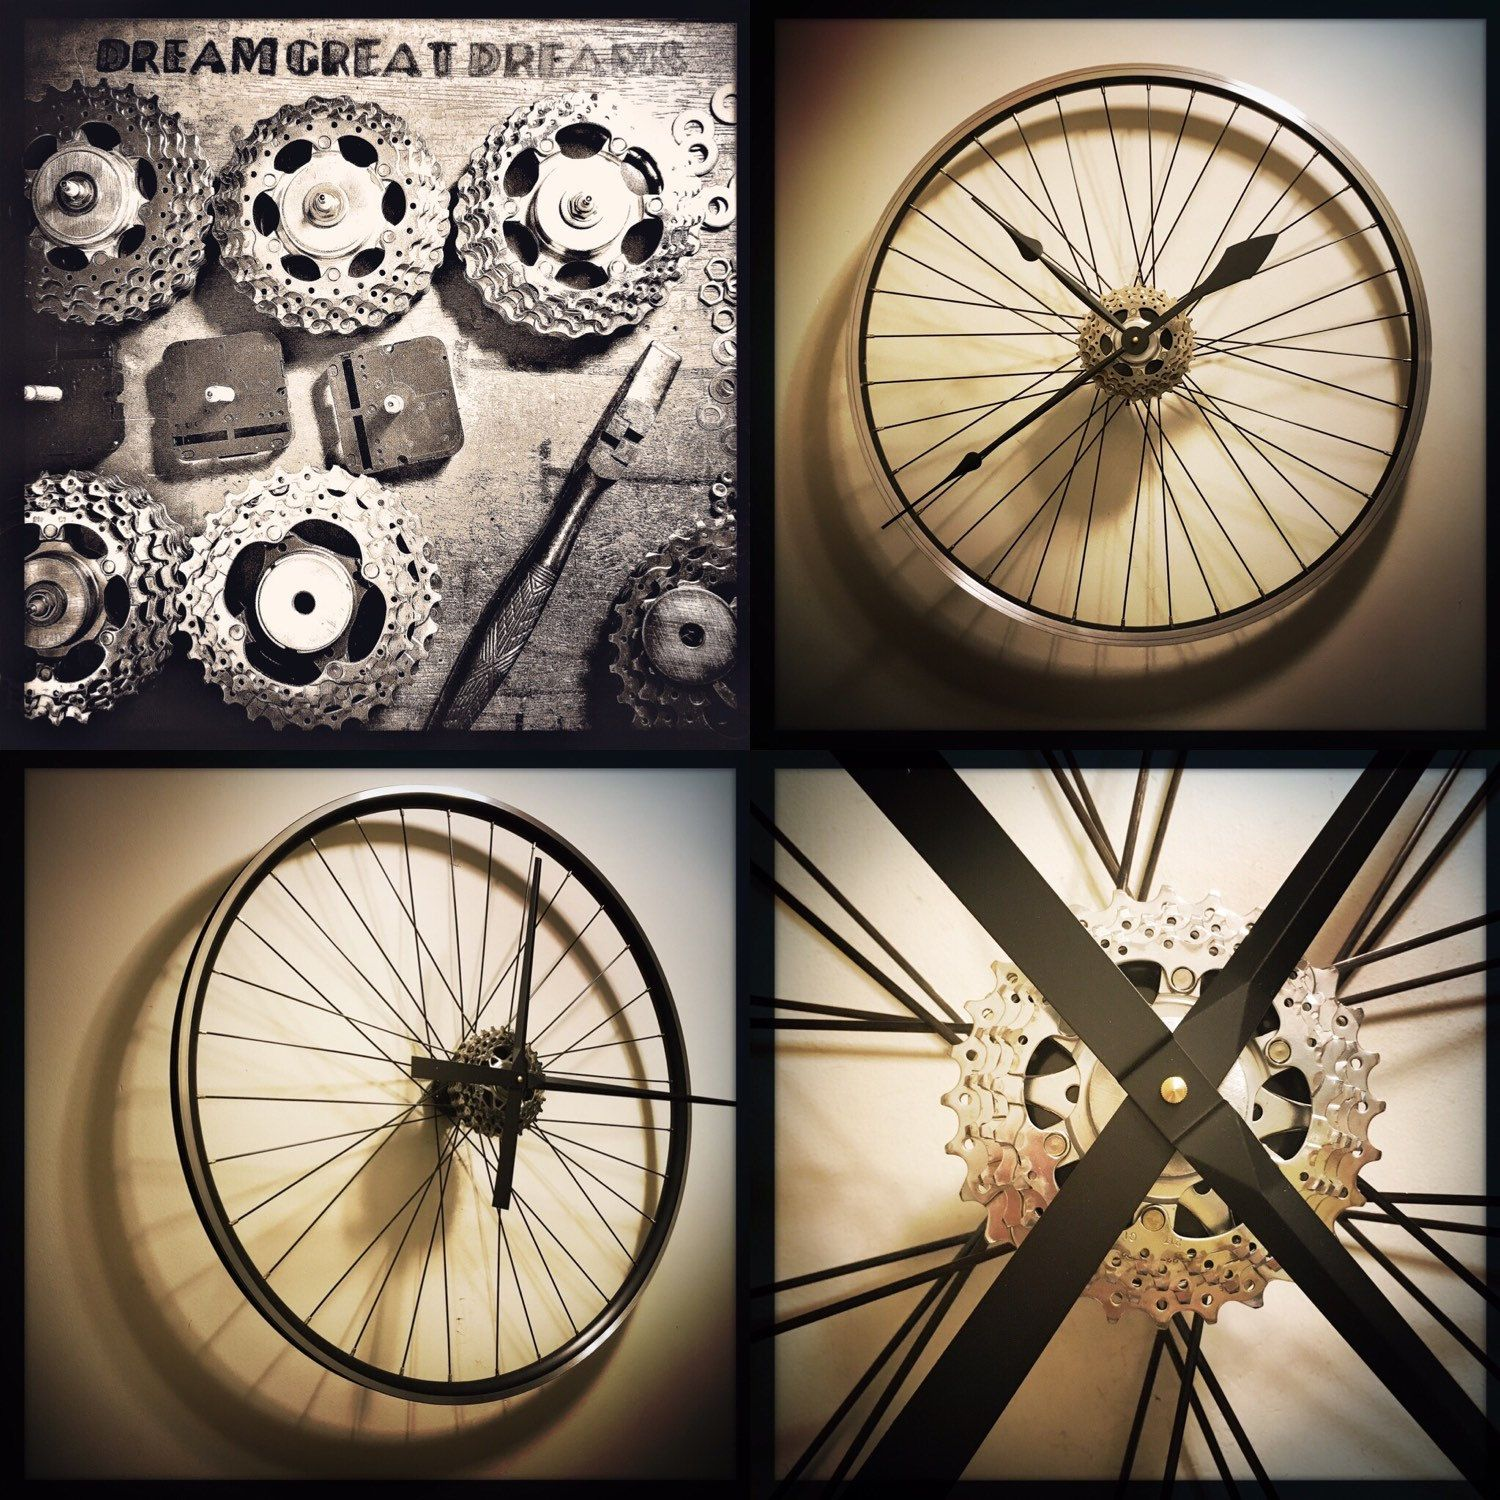 Bike Wheel Clock Unique Gift For Men Steampunk Decor Industrial Wall Art Bicycle Parts Wall Clock Bike Art